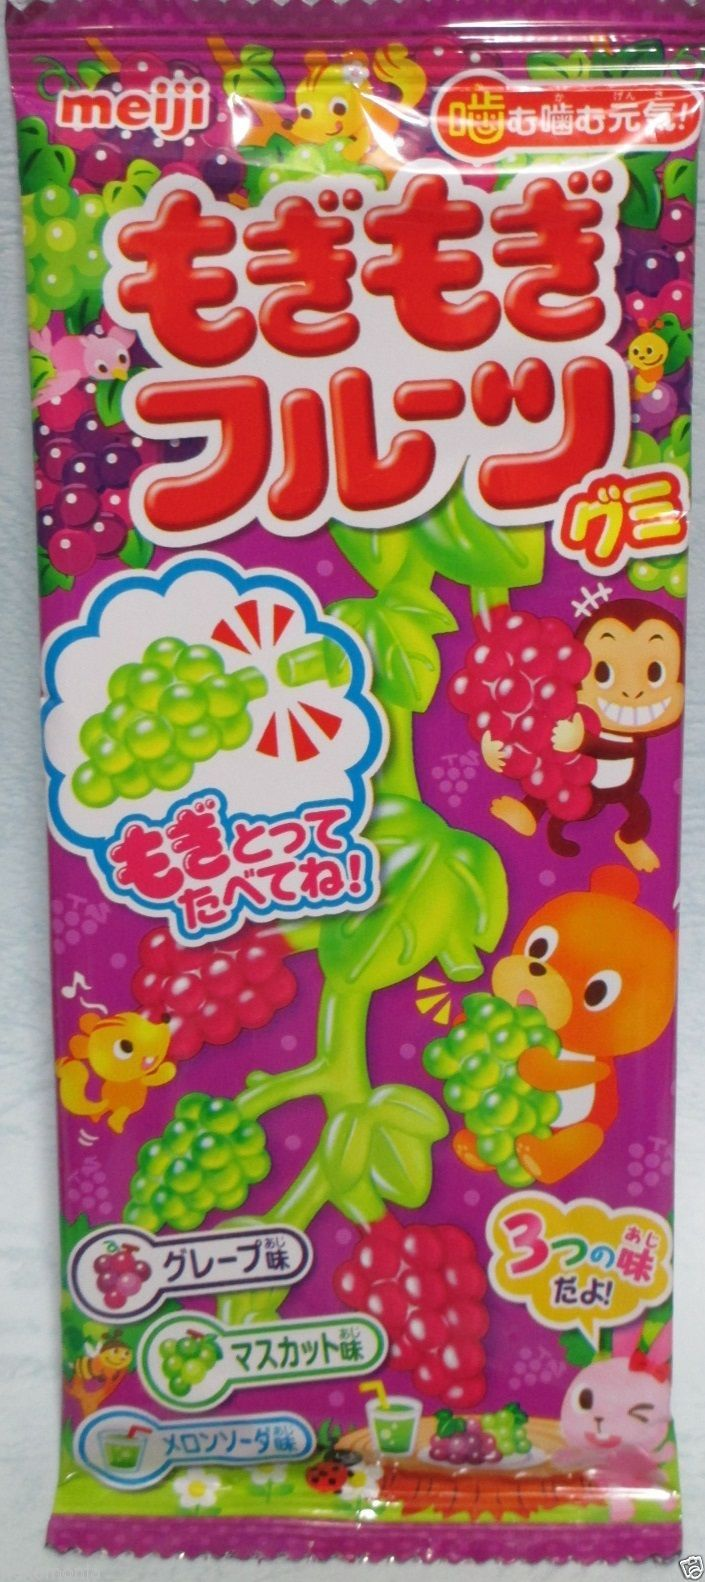 11 Pcs DIY Popin Cookin Pizza Sushi Gummy Kid's Beer Japanese Candy Making Kits | eBay